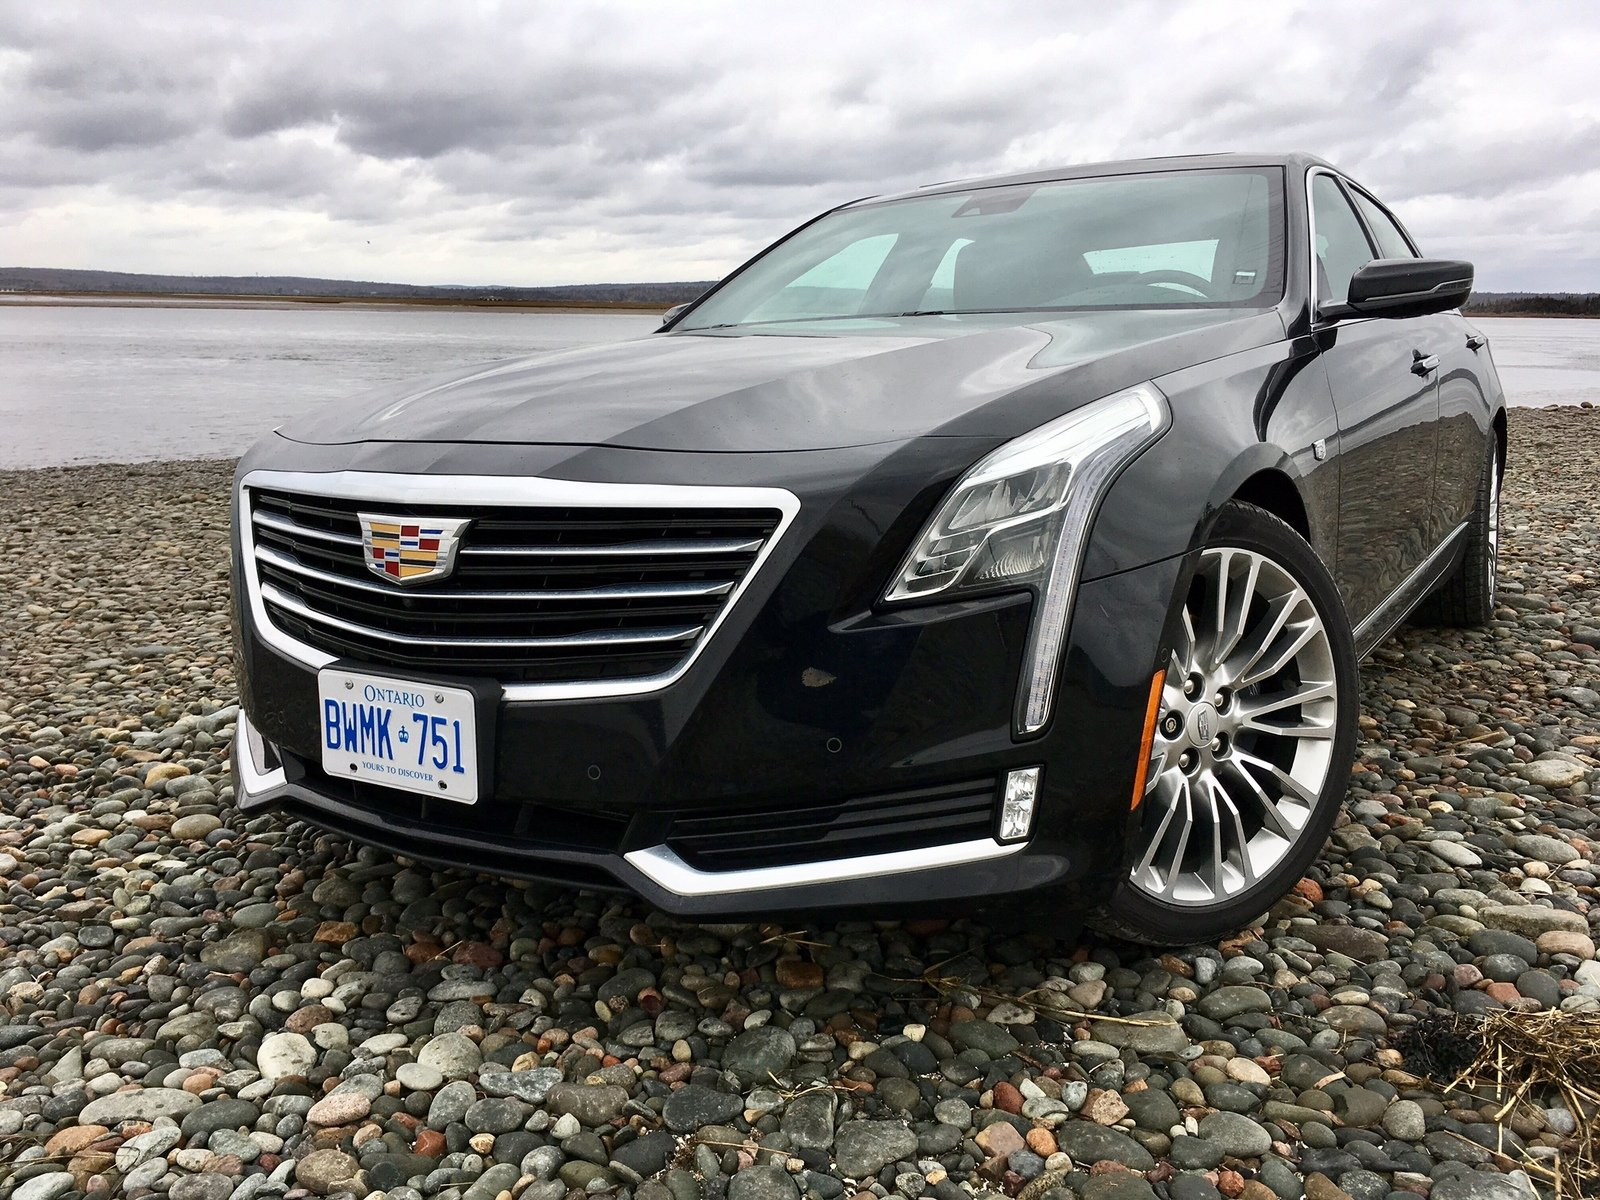 2017 cadillac ct6 picture 707957 car review top speed. Black Bedroom Furniture Sets. Home Design Ideas